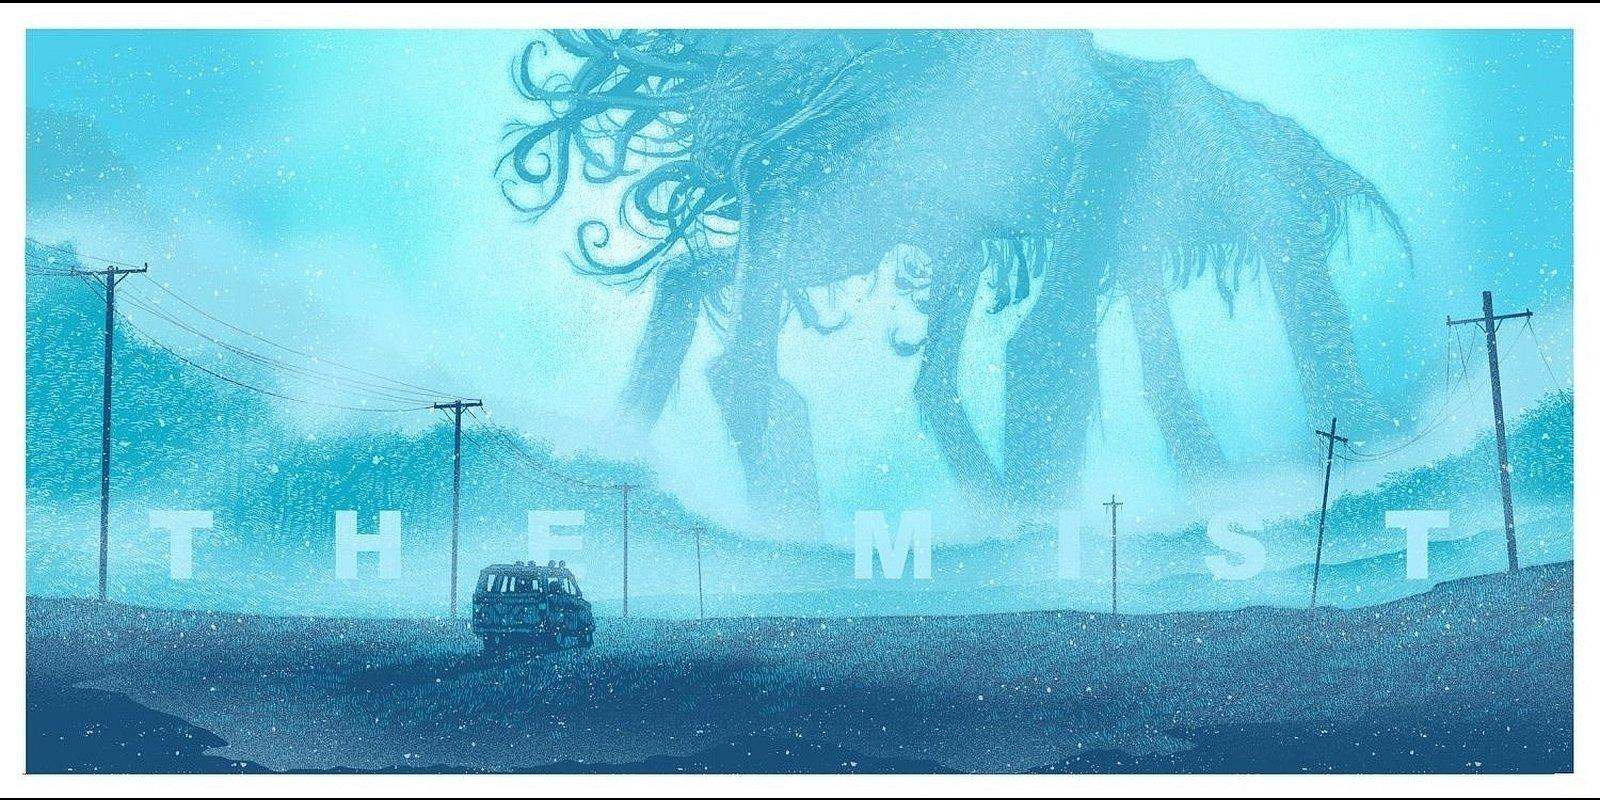 The Mist Wallpaper Image Group (35+)